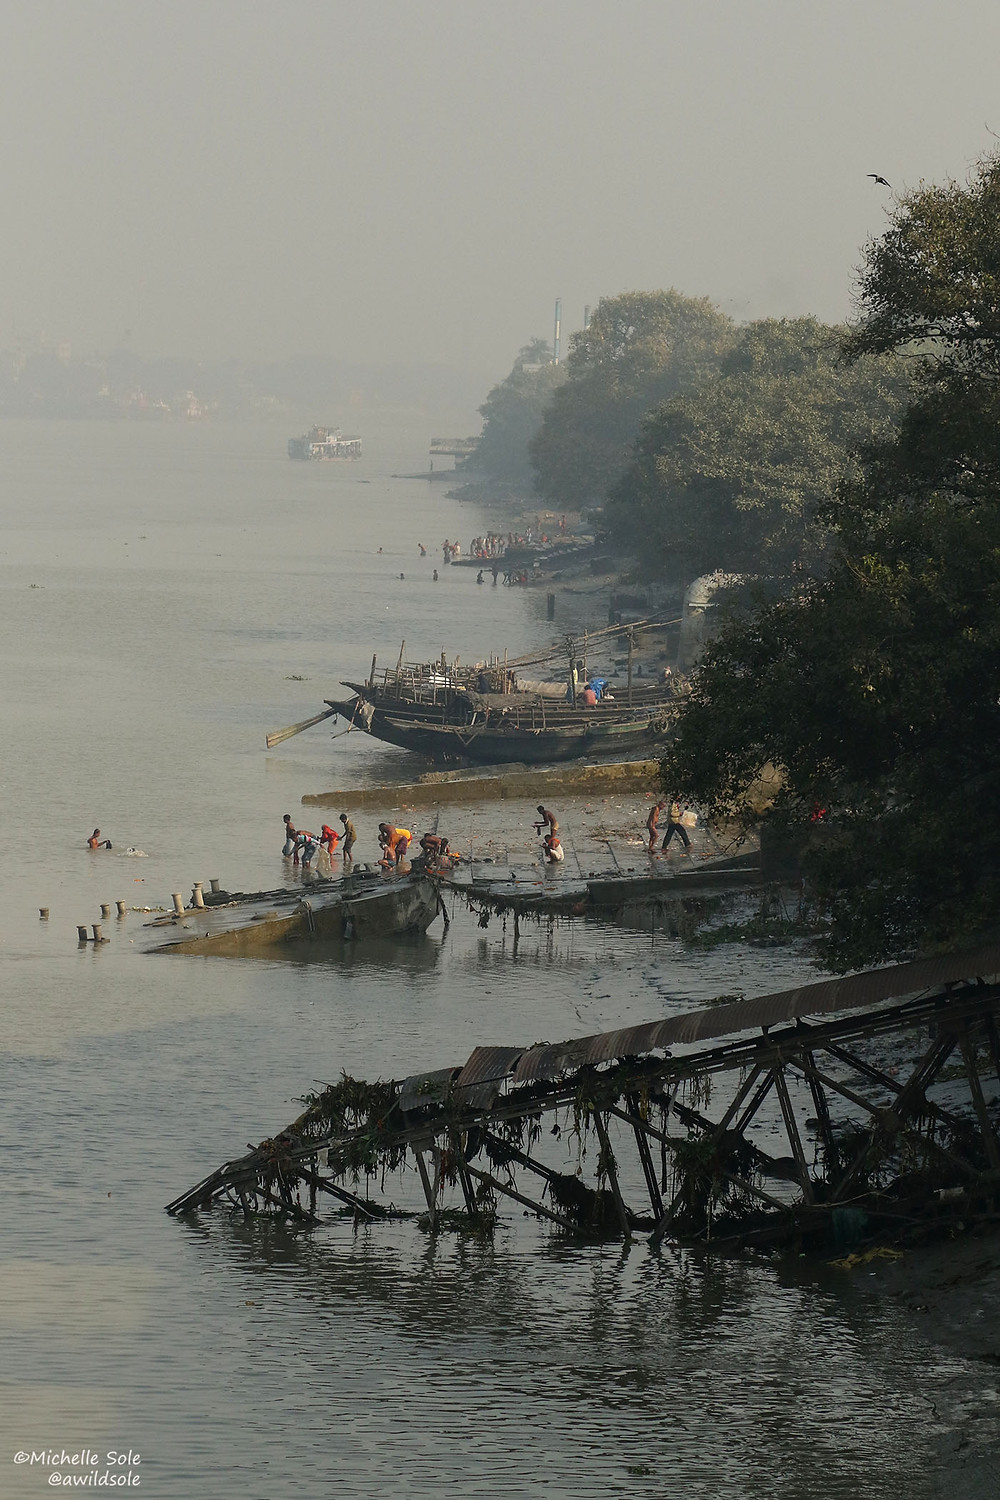 People swimming in the river in Calcutta, India